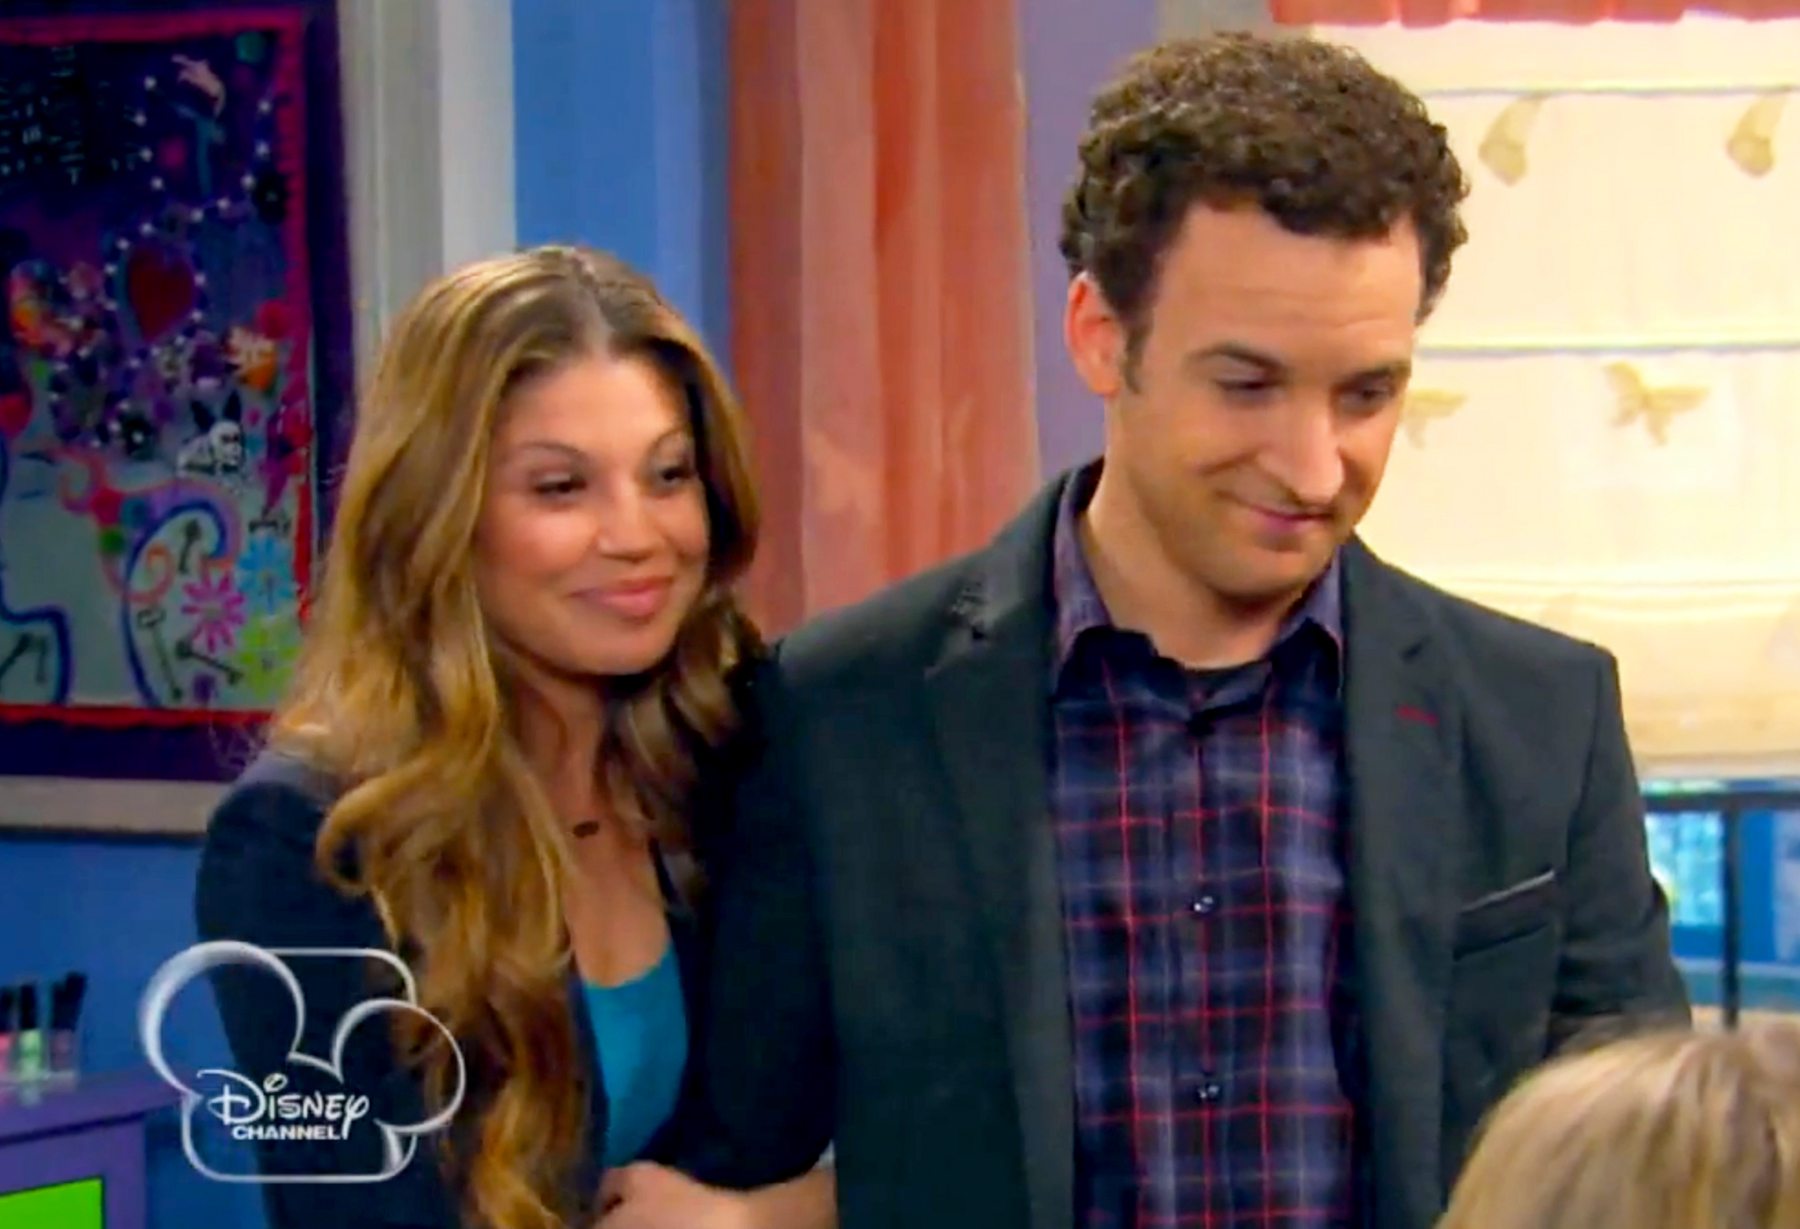 will cory and topanga be on girl meets world Children of the '90s rejoiced over news the disney channel is in the early stages of developing a sequel to the hit series boy meets world new details released about the girl meets world cast, whose lead character is cory and topanga's teenage daughter, riley, reveal some exciting (and surprising) spoilers about the spinoff.